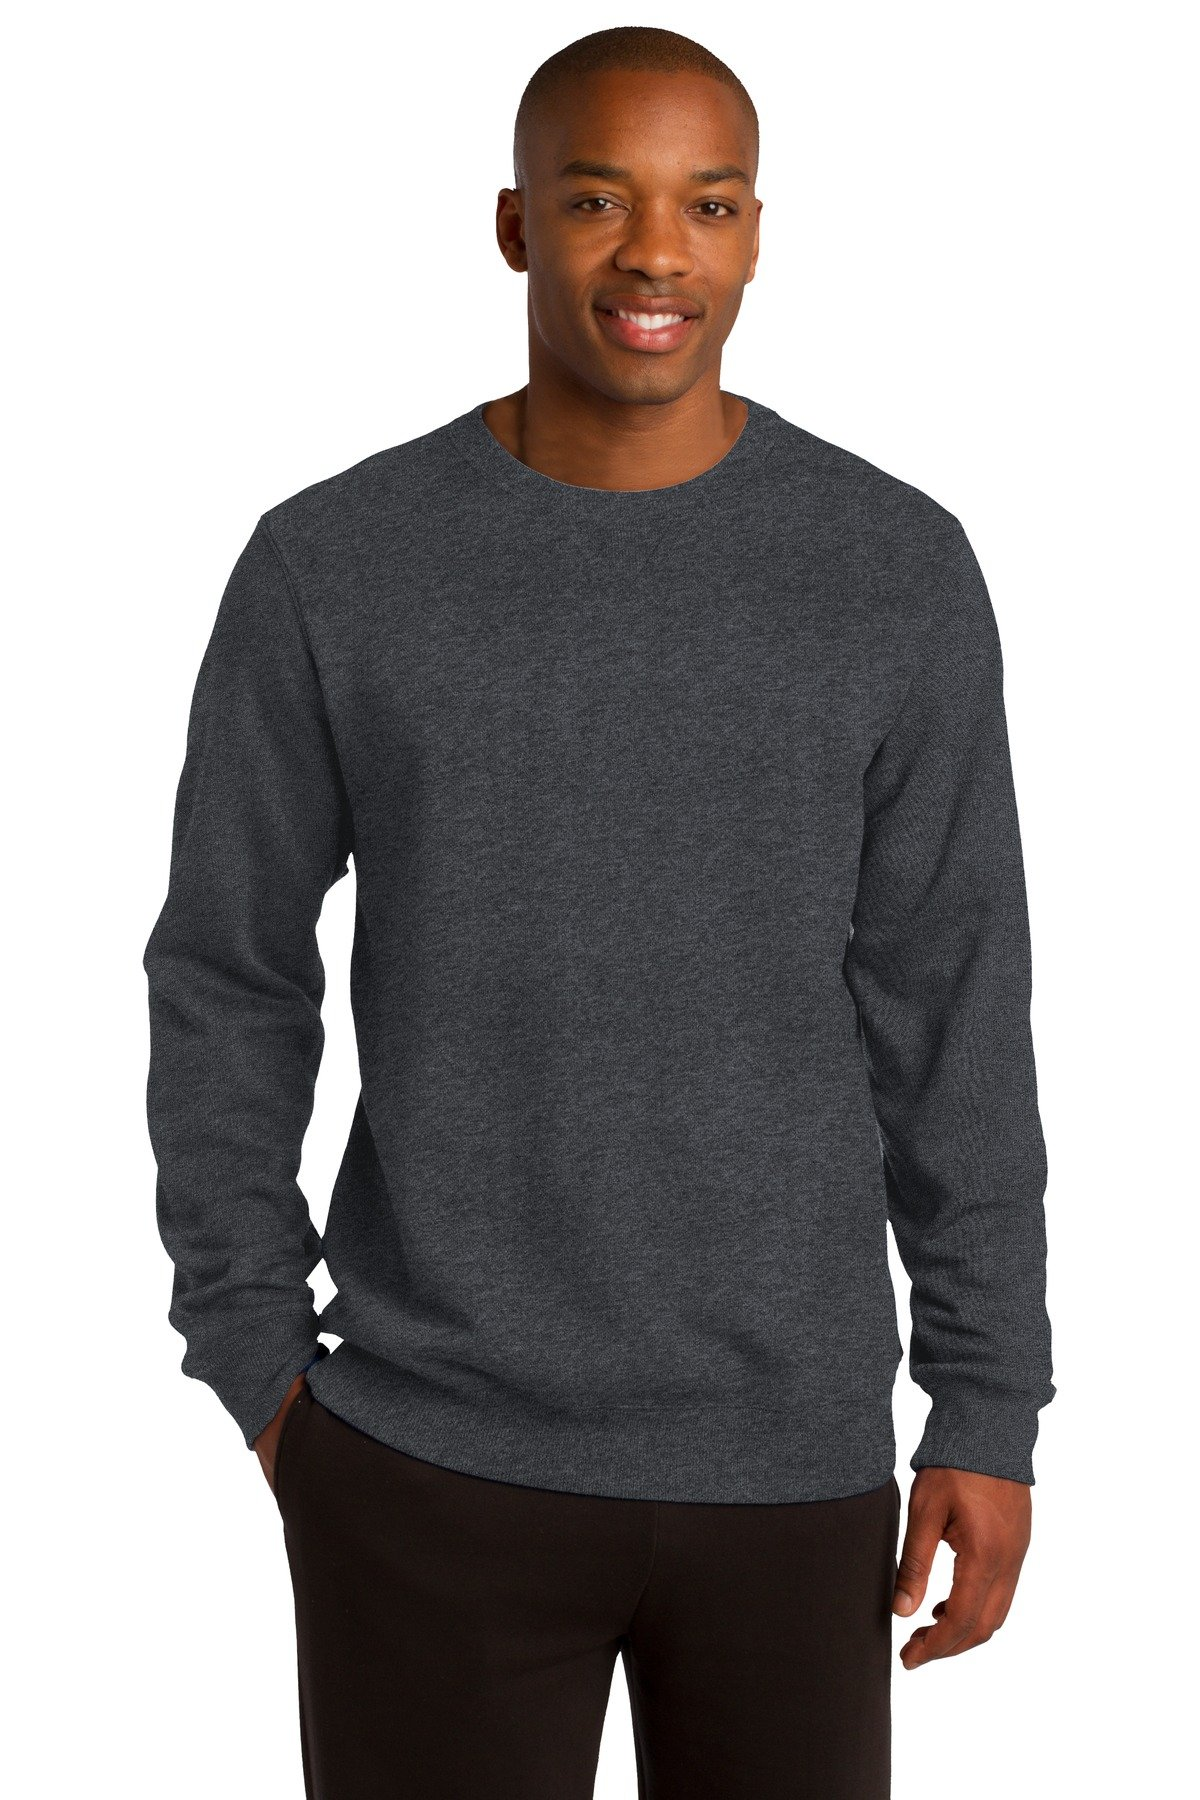 Sport-Tek Men's Crewneck Sweatshirt XXL Graphite Heather by Sport-Tek